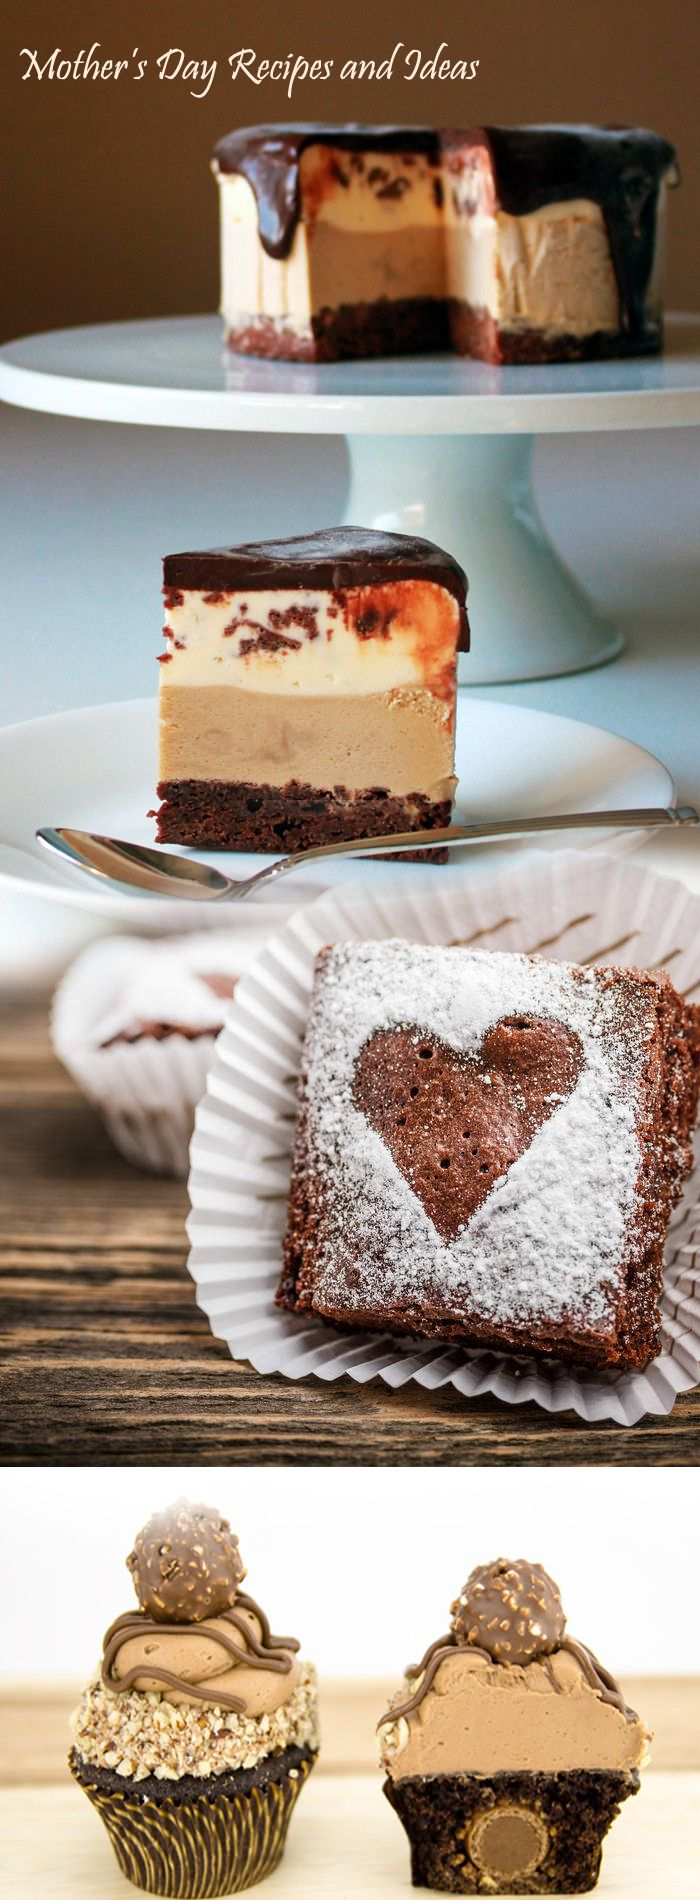 Mother's day recipes and ideas #mothersday #motherscake